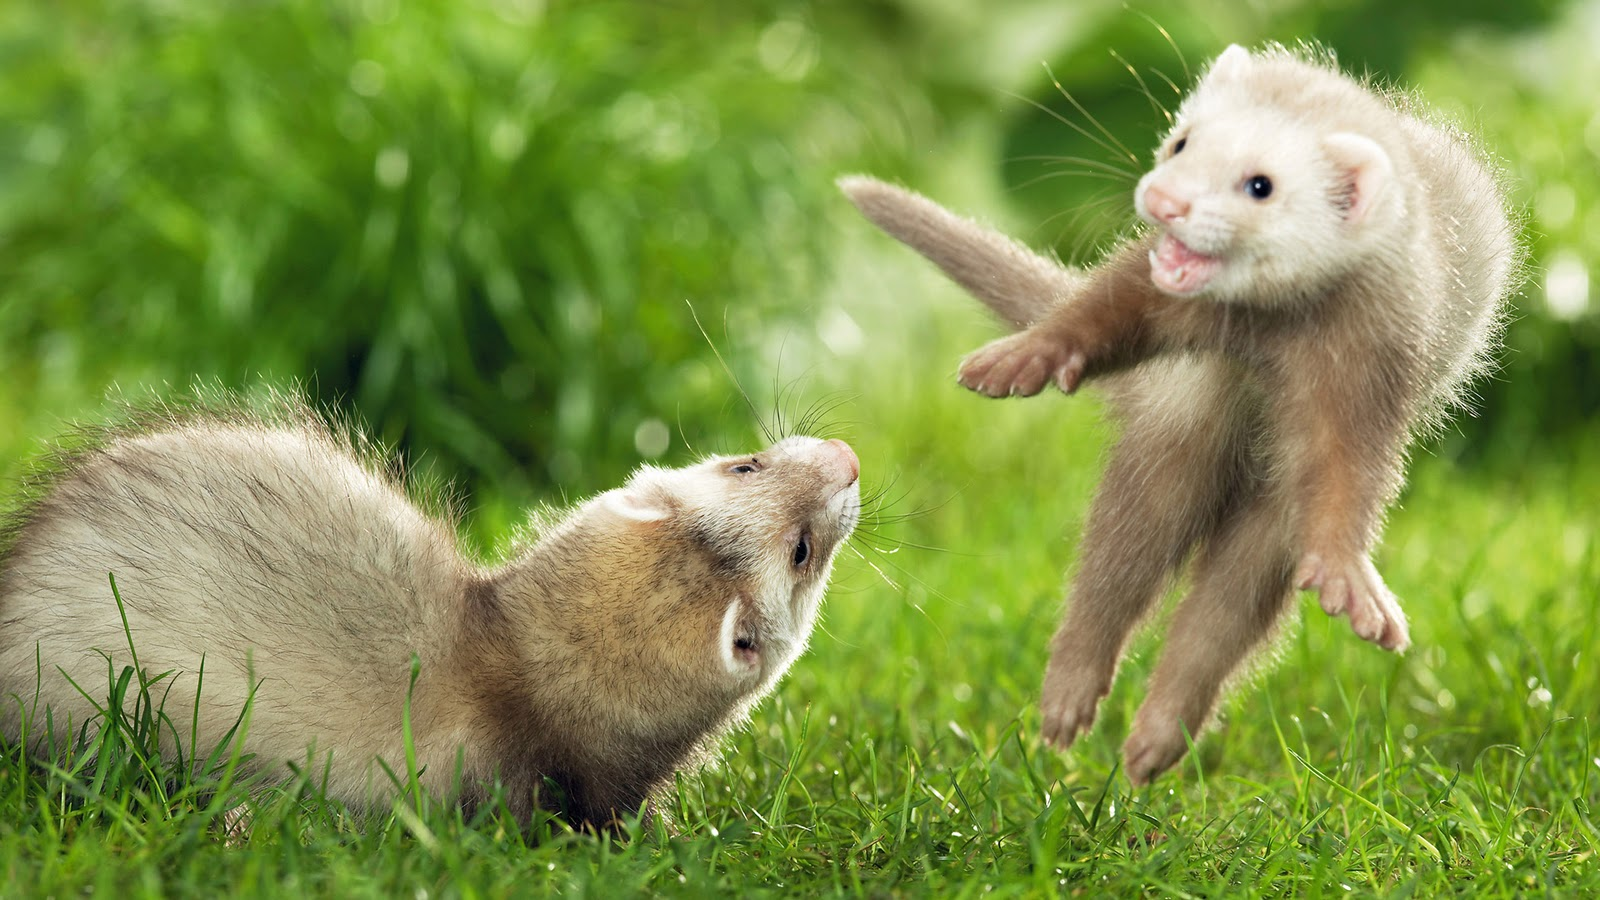 Photography nature world people beauty cute animals hd - Animal pictures for desktop backgrounds ...